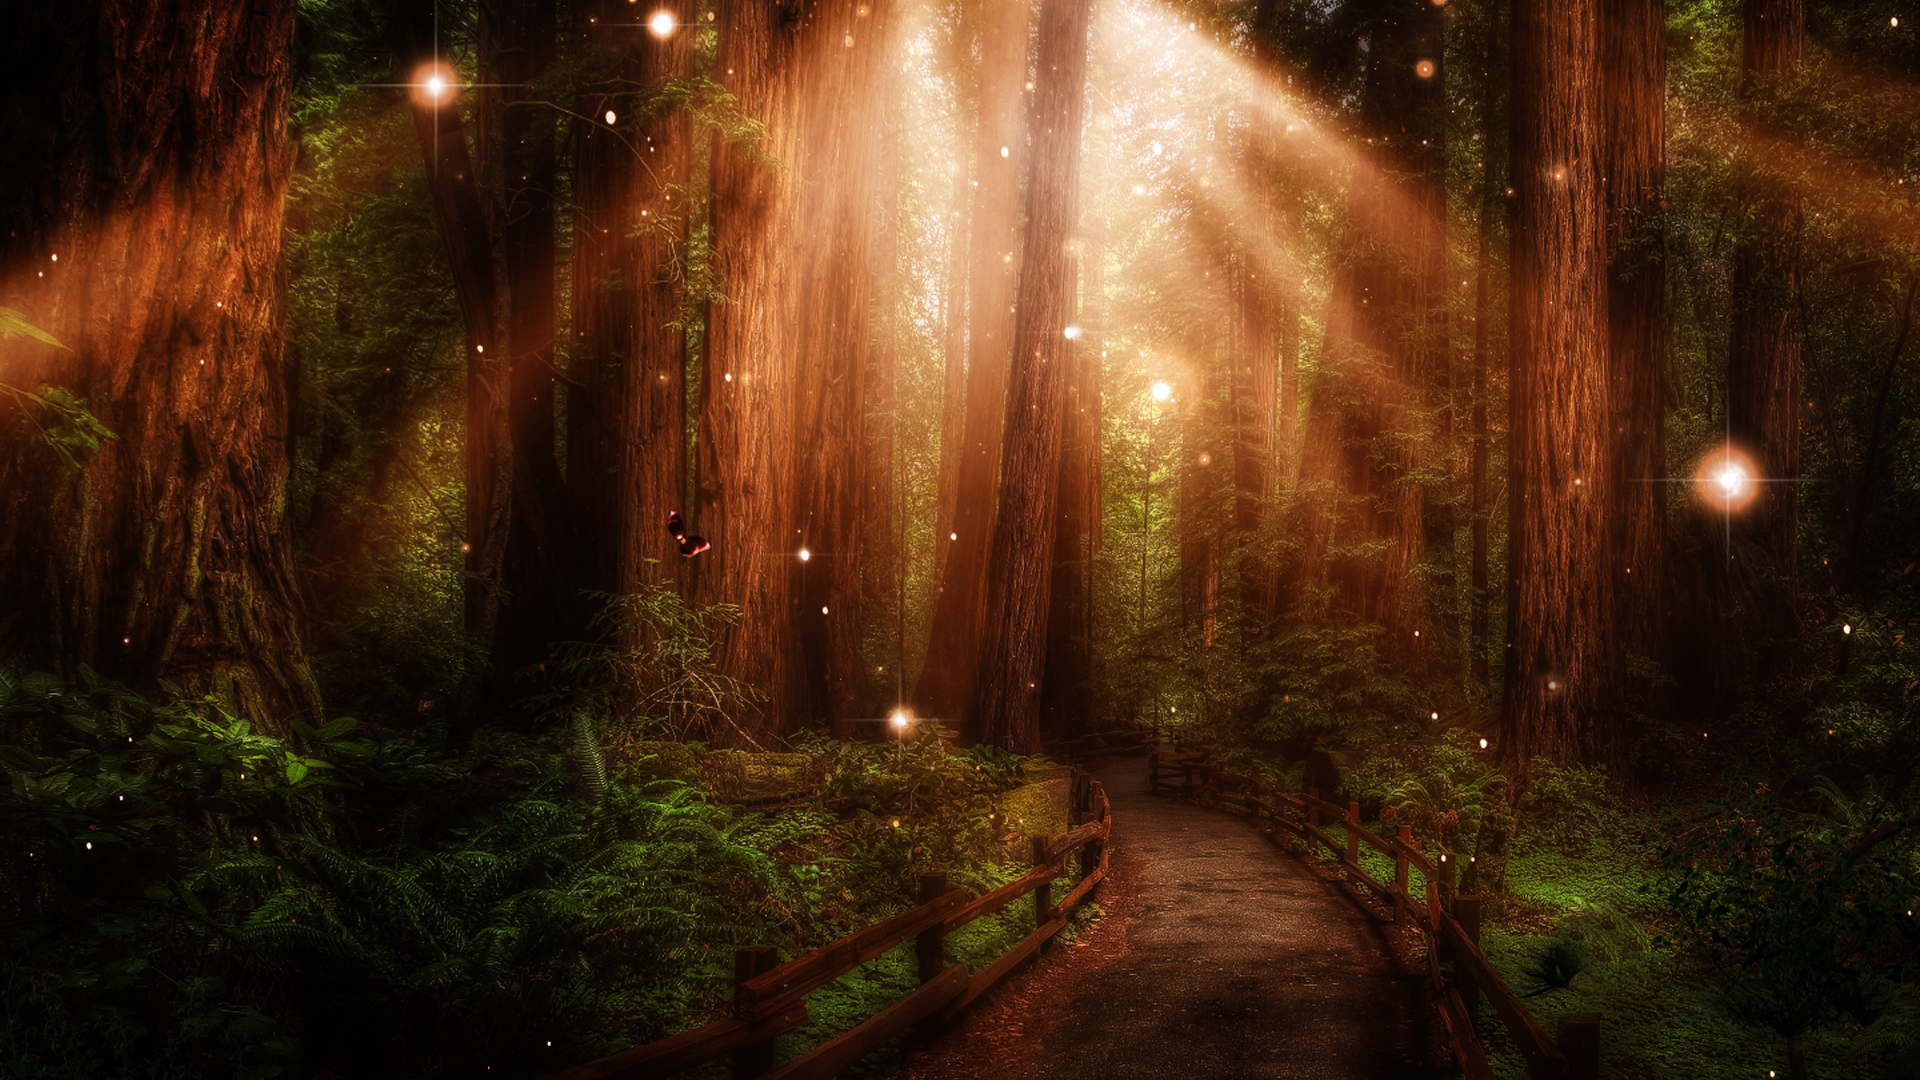 Stunning Forest Path Wallpaper 32574 1920x1080 Px